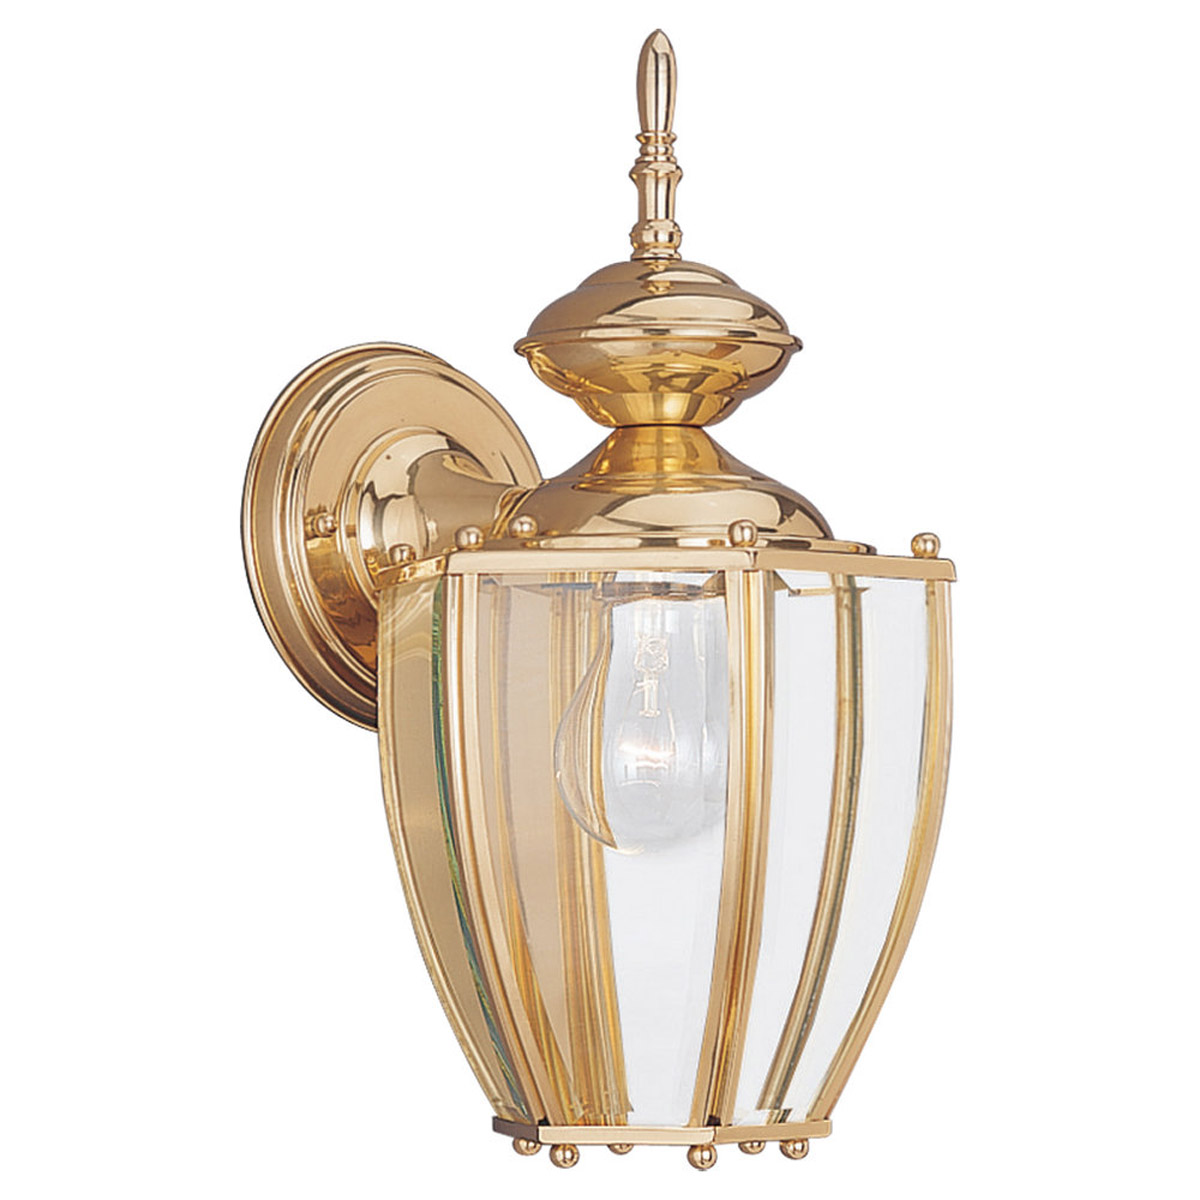 Sea Gull Lighting Society Hill 1 Light Outdoor Wall Lantern in Polished Brass 8580-02 photo